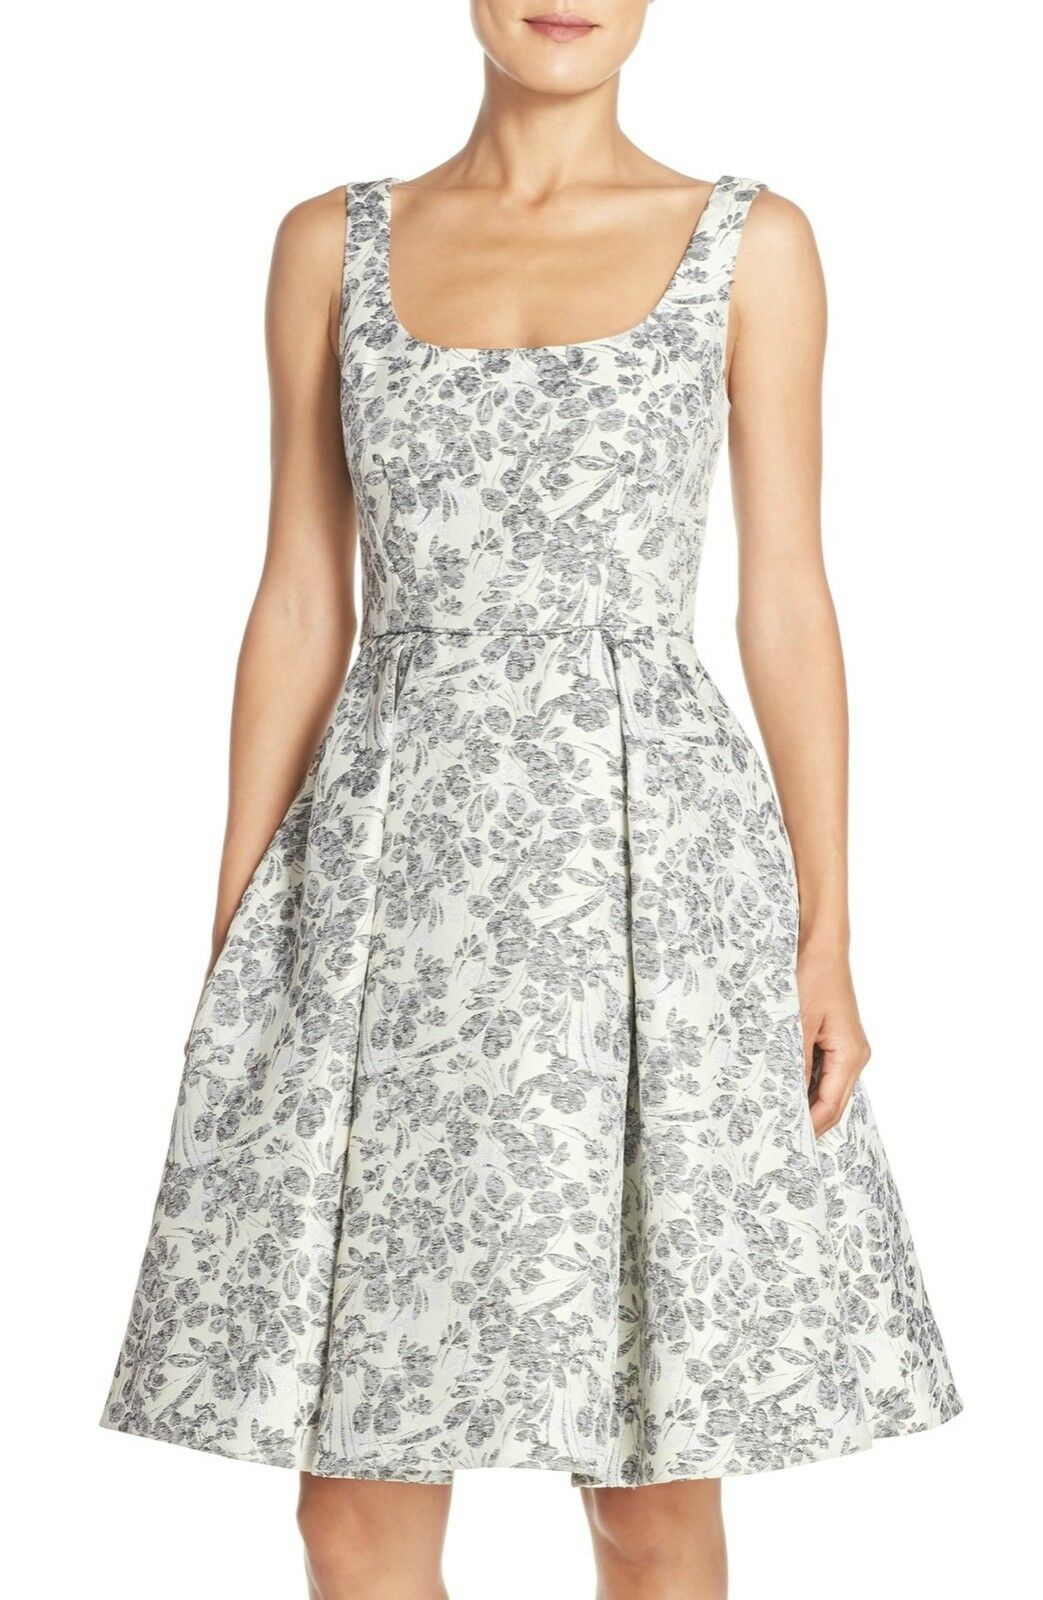 MAGGY LONDON Floral Brocade Fit & Flare Ivory Grey ModCloth Dress NWT US6 Fits M